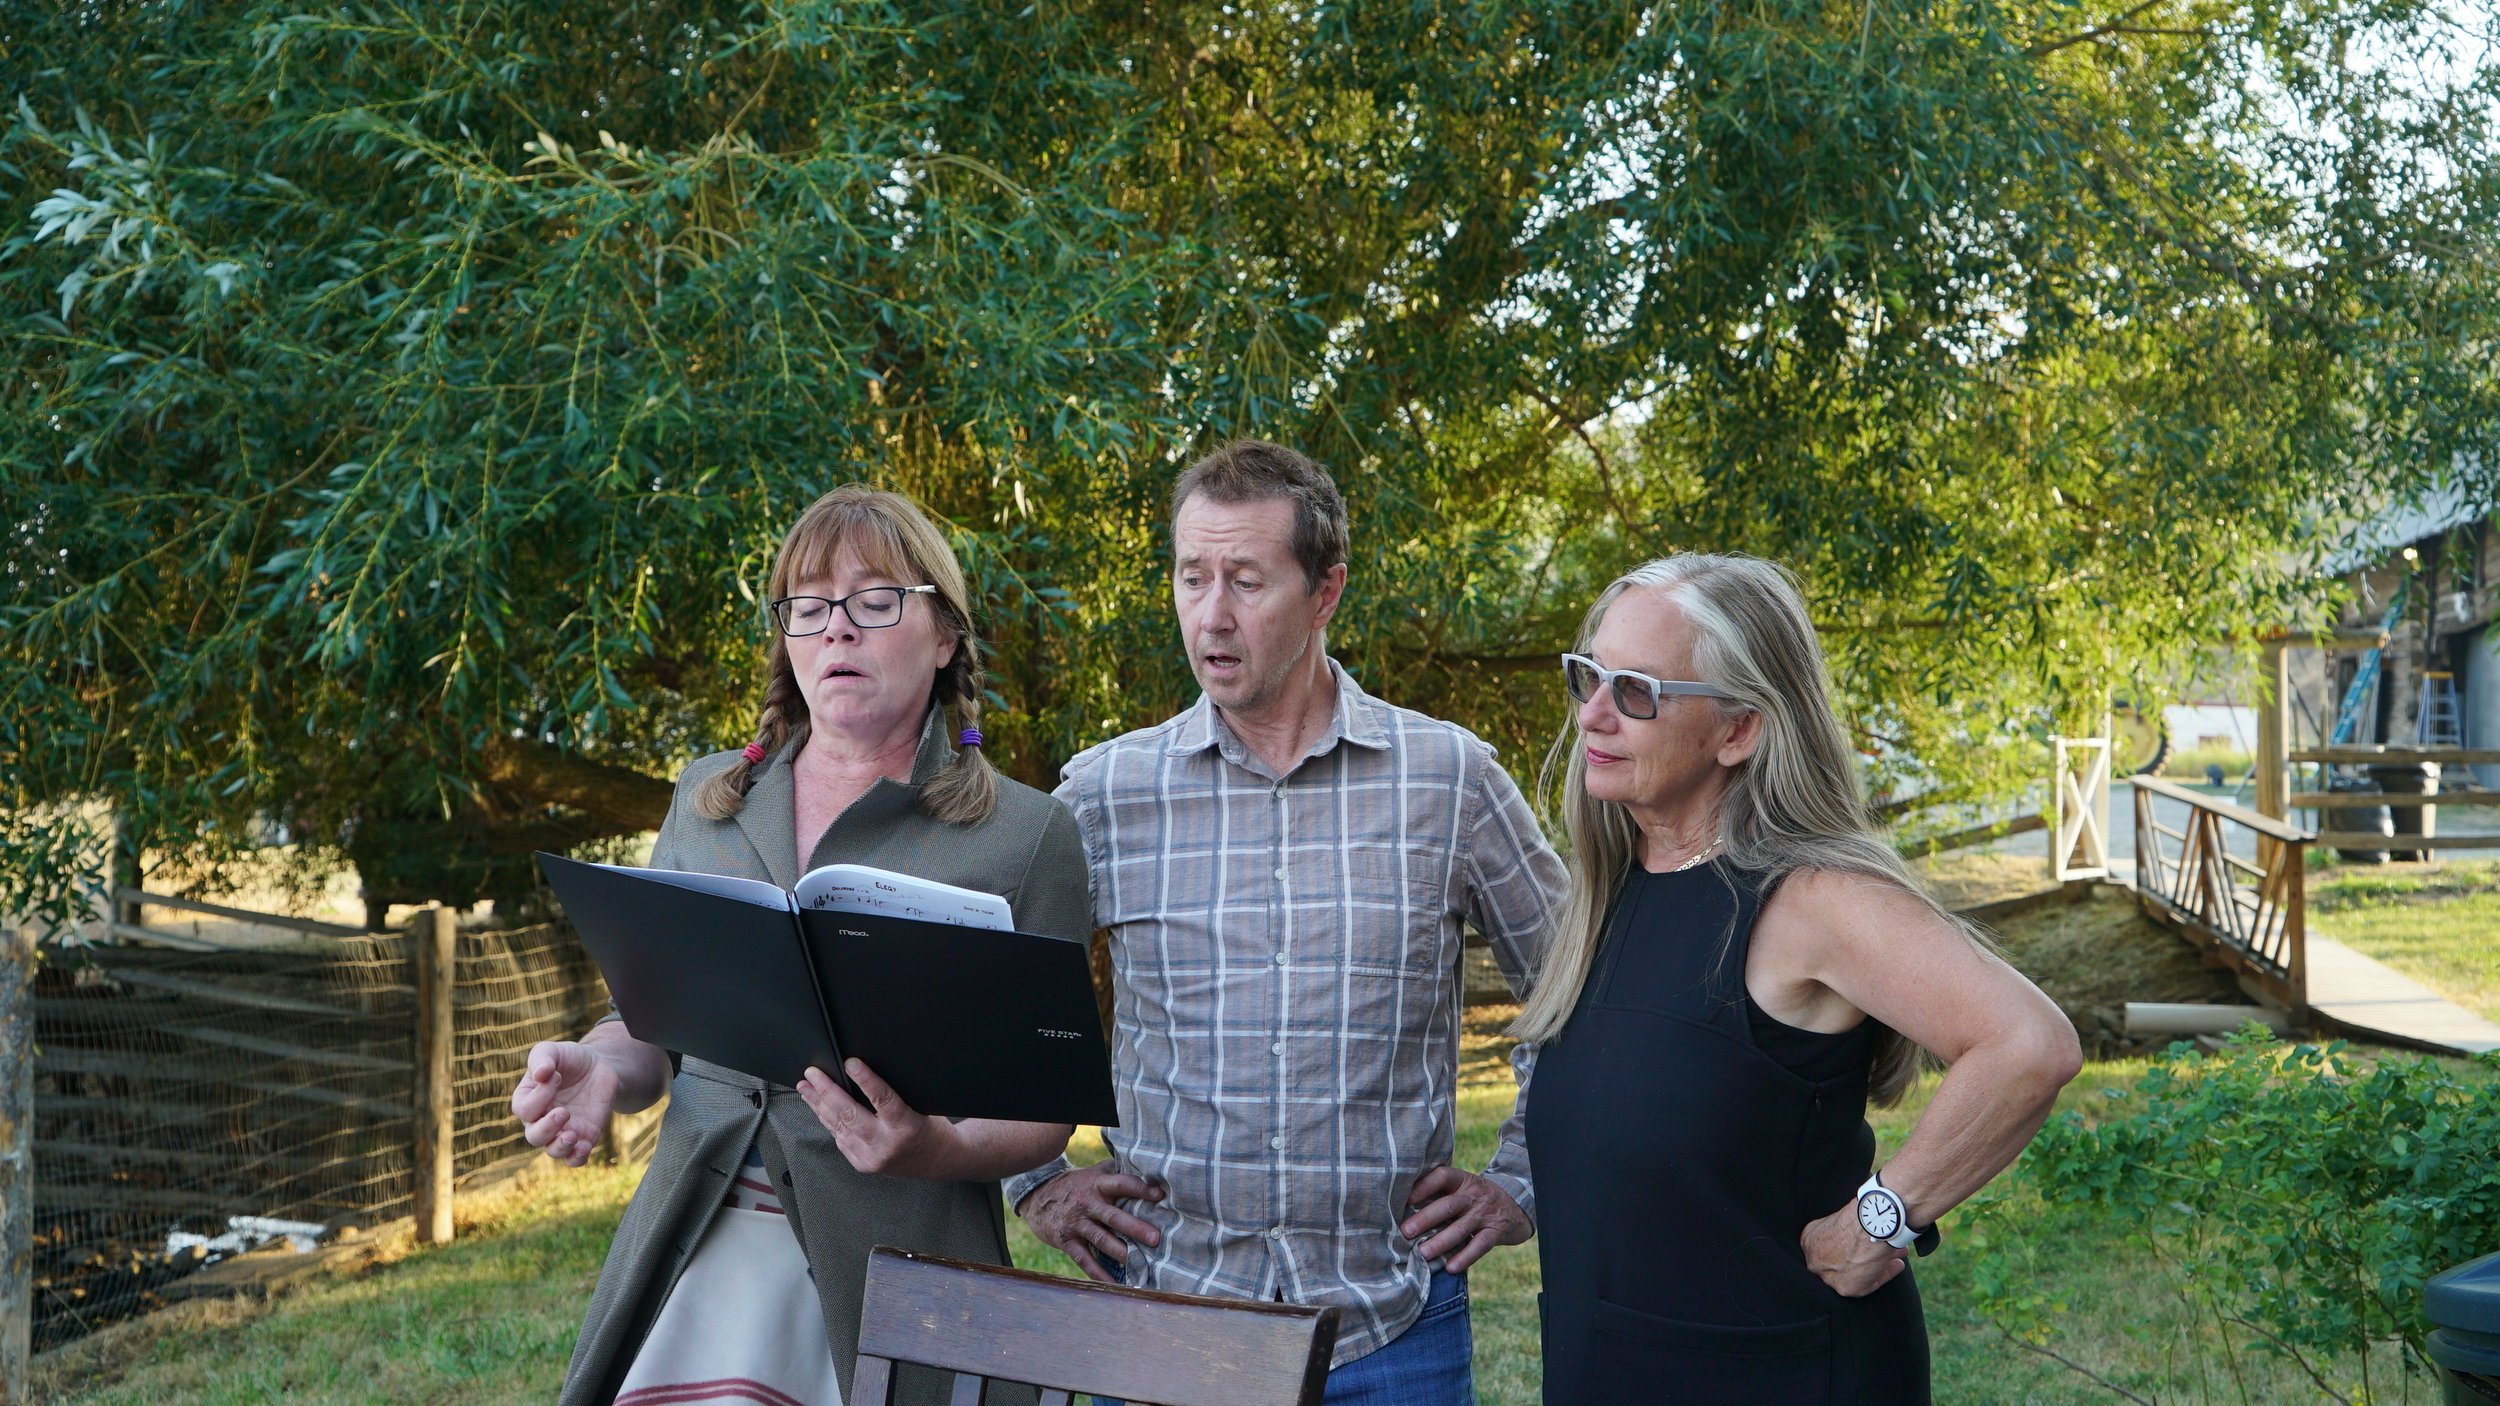 Elizabeth Croy, Gregory Young and Mary Ellen Strom rehearse for Gabriel Canal.